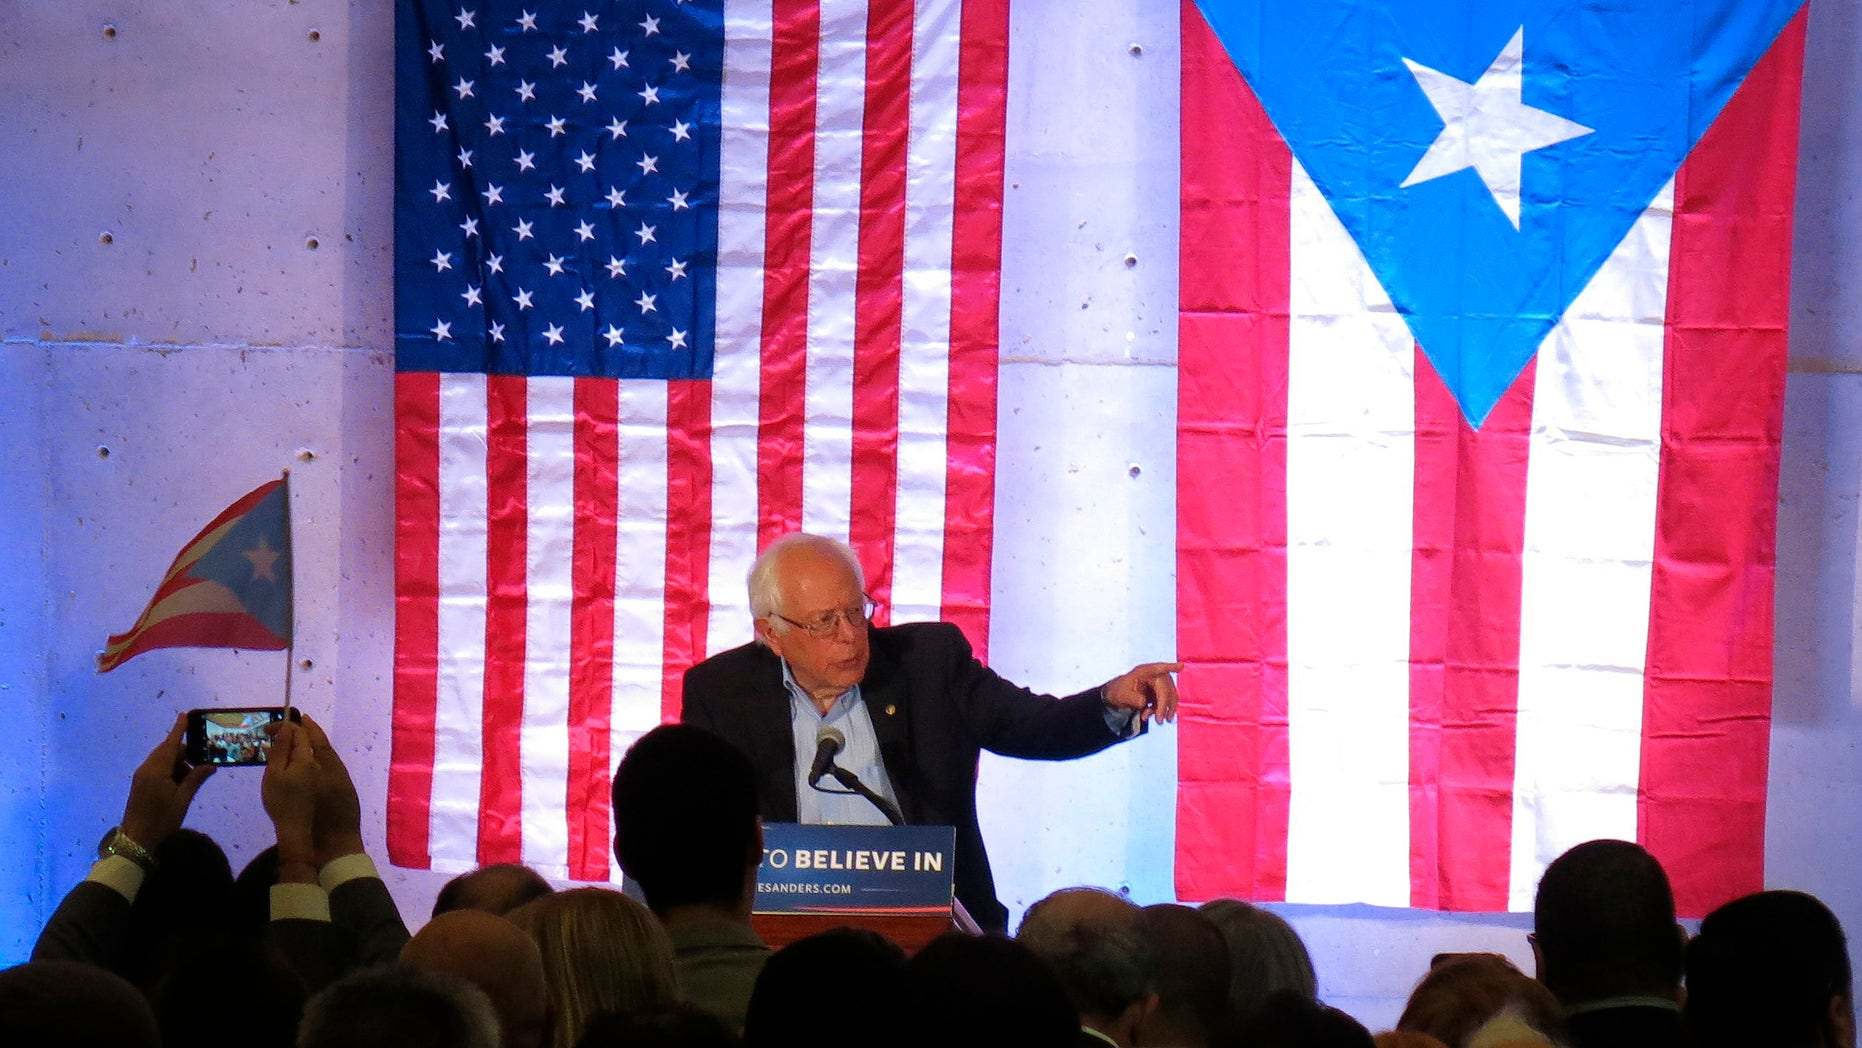 Democratic presidential candidate Sen. Bernie Sanders, I-Vt., holds a town hall meeting at the Luis Muñoz Marin Foundation in Trujillo Alto, Puerto Rico, Monday, May 16, 2016. Sanders arrived in Puerto Rico on Monday to talk about the U.S. territory's worsening debt crisis ahead of the June 5 primary. (AP Photo/Danica Coto)